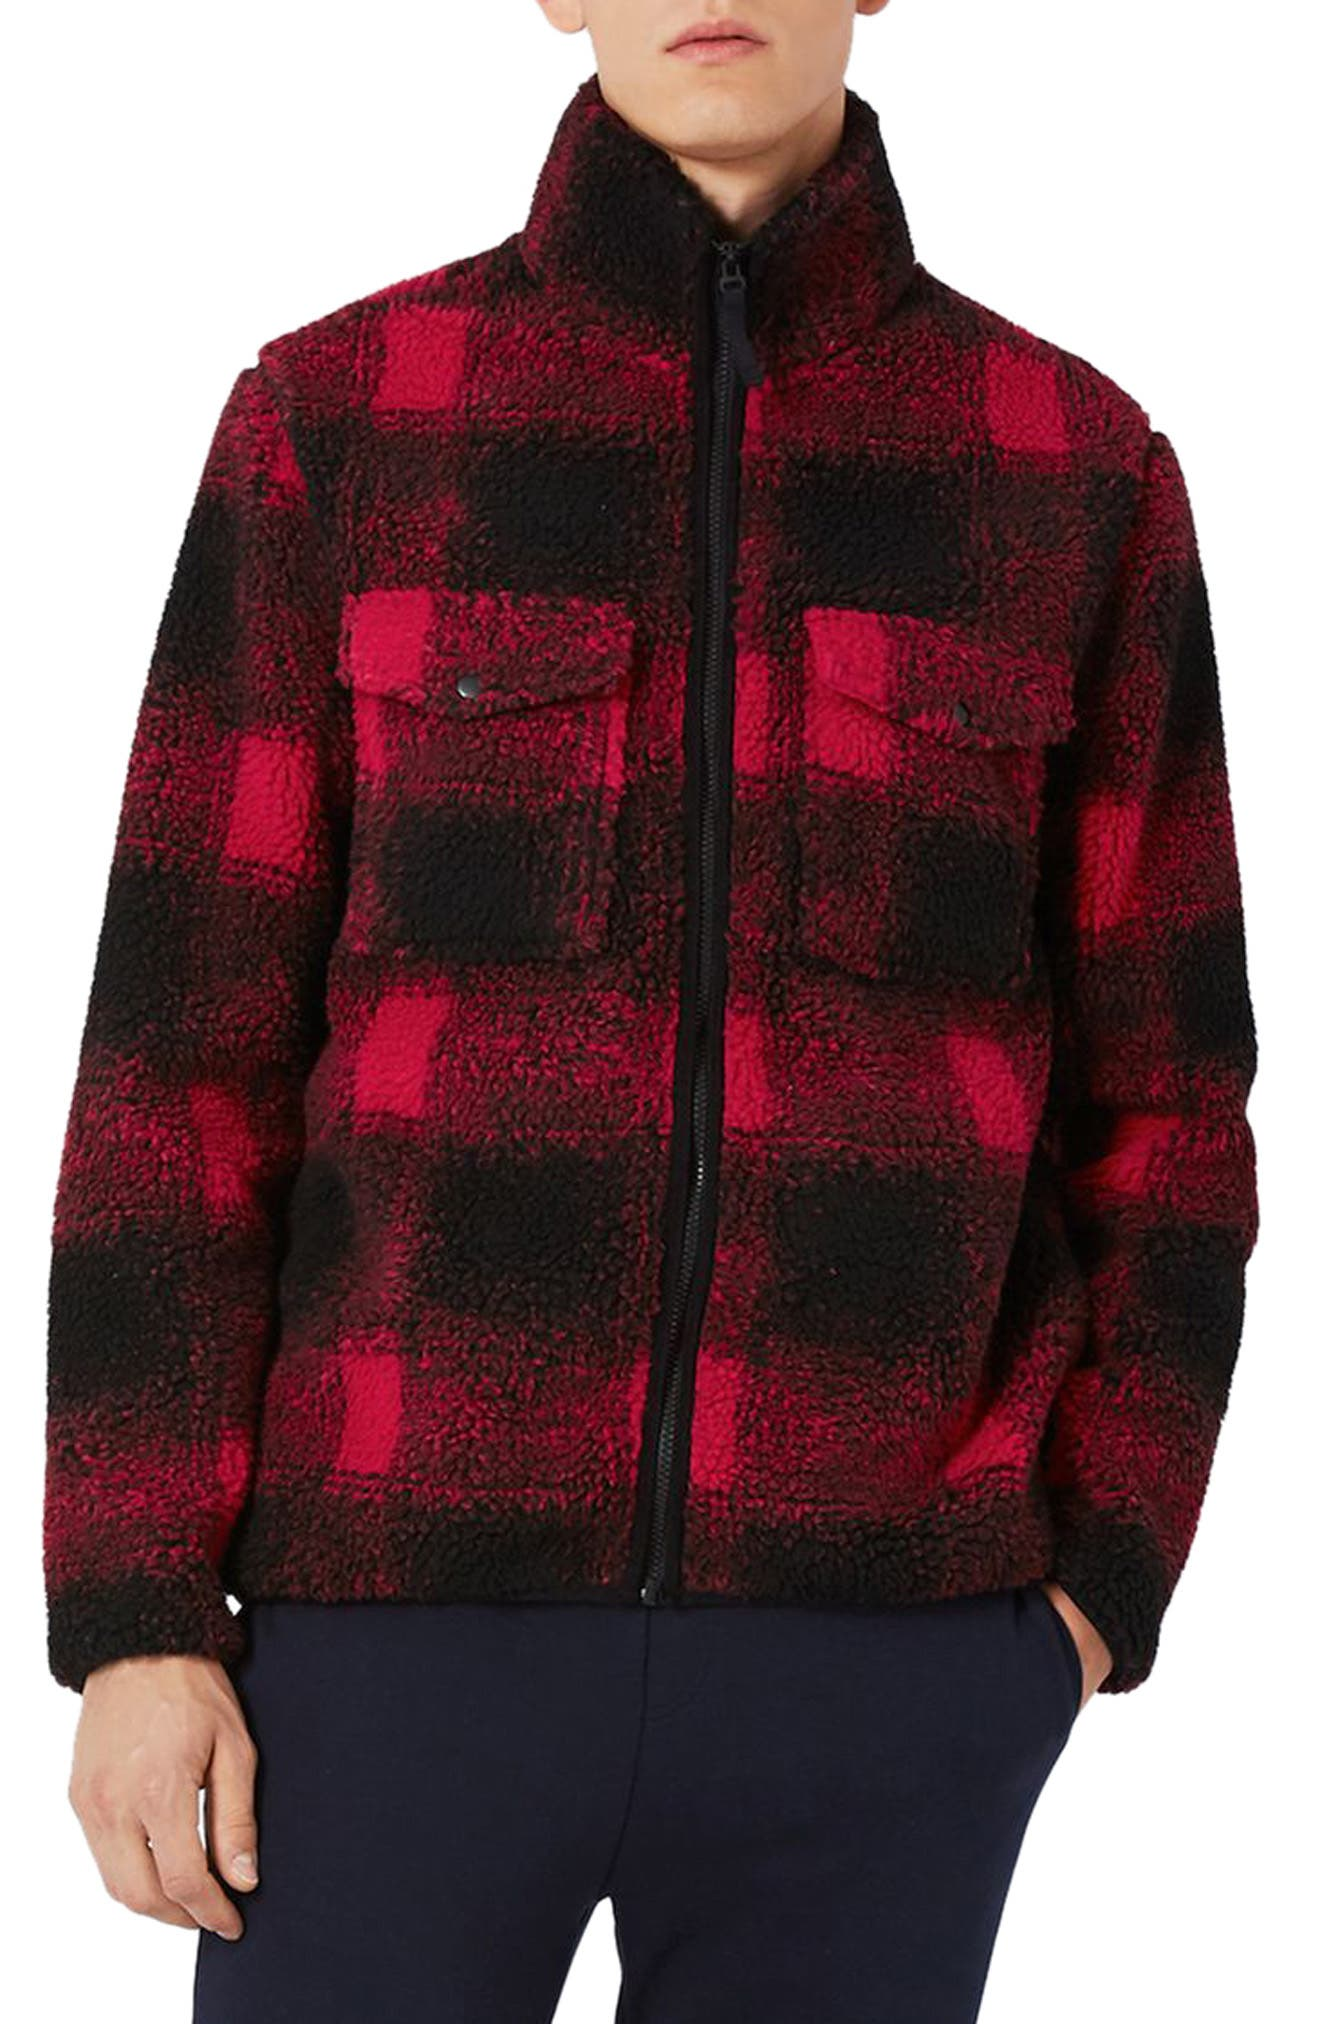 Alternate Image 1 Selected - Topman Buffalo Check Borg Jacket